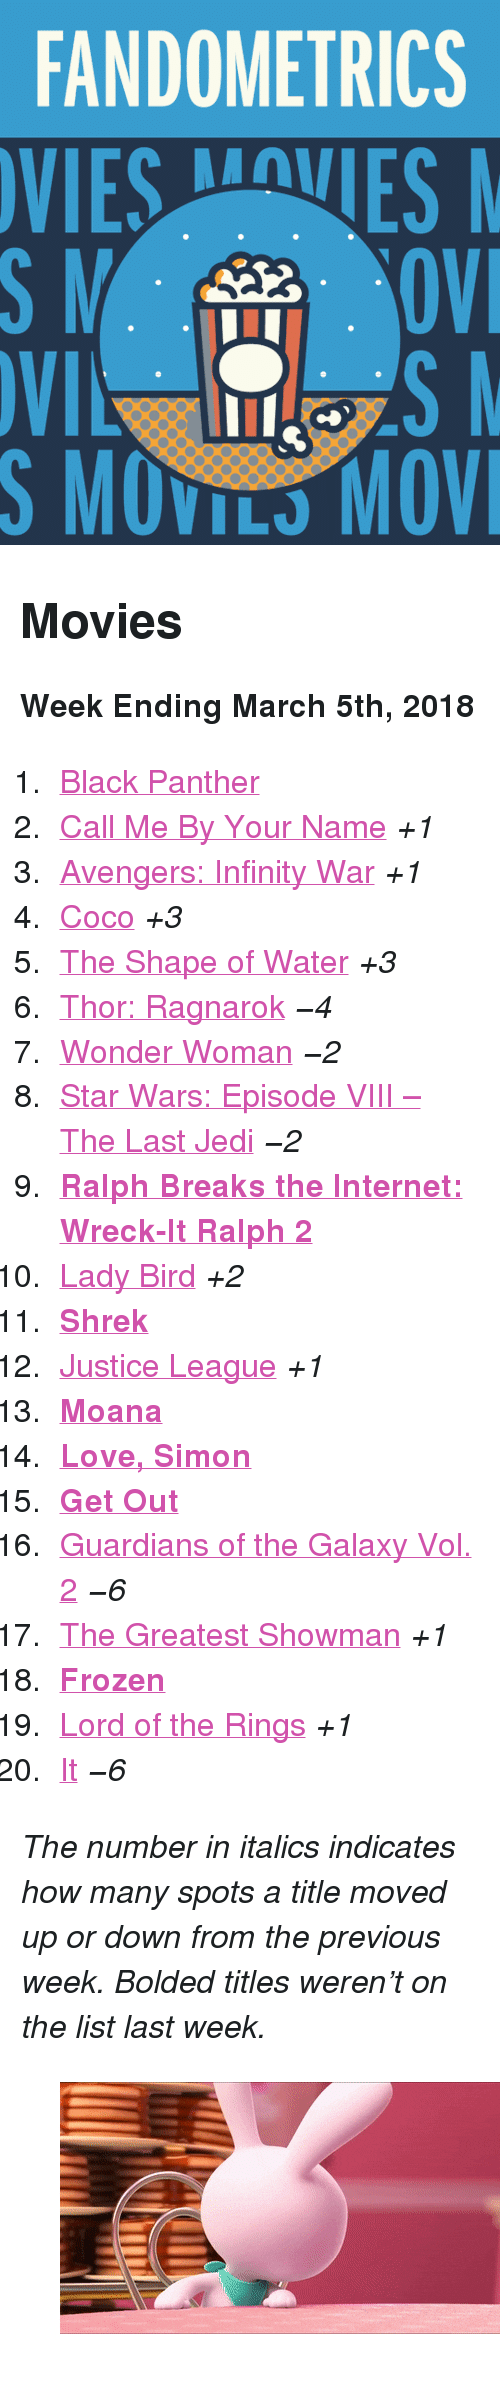 """Wreck It: FANDOMETRICS  SMOVILS MOV <h2>Movies</h2><p><b>Week Ending March 5th, 2018</b></p><ol><li><a href=""""http://www.tumblr.com/search/black%20panther"""">Black Panther</a></li>  <li><a href=""""http://www.tumblr.com/search/call%20me%20by%20your%20name"""">Call Me By Your Name</a><i>+1</i></li>  <li><a href=""""http://www.tumblr.com/search/infinity%20war"""">Avengers: Infinity War</a><i>+1</i></li>  <li><a href=""""http://www.tumblr.com/search/coco"""">Coco</a><i>+3</i></li>  <li><a href=""""http://www.tumblr.com/search/the%20shape%20of%20water"""">The Shape of Water</a><i>+3</i></li>  <li><a href=""""http://www.tumblr.com/search/thor%20ragnarok"""">Thor: Ragnarok</a><i><i>−4</i></i></li>  <li><a href=""""http://www.tumblr.com/search/wonder%20woman"""">Wonder Woman</a><i><i>−2</i></i></li>  <li><a href=""""http://www.tumblr.com/search/the%20last%20jedi"""">Star Wars: Episode VIII – The Last Jedi</a><i><i>−2</i></i></li>  <li><a href=""""http://www.tumblr.com/search/wreck%20it%20ralph""""><b>Ralph Breaks the Internet: Wreck-It Ralph 2</b></a></li>  <li><a href=""""http://www.tumblr.com/search/lady%20bird"""">Lady Bird</a><i>+2</i></li>  <li><a href=""""http://www.tumblr.com/search/shrek""""><b>Shrek</b></a></li>  <li><a href=""""http://www.tumblr.com/search/justice%20league"""">Justice League</a><i>+1</i></li>  <li><a href=""""http://www.tumblr.com/search/moana""""><b>Moana</b></a></li>  <li><a href=""""http://www.tumblr.com/search/love%20simon""""><b>Love, Simon</b></a></li>  <li><a href=""""http://www.tumblr.com/search/get%20out""""><b>Get Out</b></a></li>  <li><a href=""""http://www.tumblr.com/search/guardians%20of%20the%20galaxy"""">Guardians of the Galaxy Vol. 2</a><i><i>−6</i></i></li>  <li><a href=""""http://www.tumblr.com/search/the%20greatest%20showman"""">The Greatest Showman</a><i>+1</i></li>  <li><a href=""""http://www.tumblr.com/search/frozen""""><b>Frozen</b></a></li>  <li><a href=""""http://www.tumblr.com/search/lotr"""">Lord of the Rings</a><i>+1</i></li>  <li><a href=""""http://www.tumblr.com/search/it%202017"""">It</a><i><i>−6</i></i></li></ol><p><i>The number """